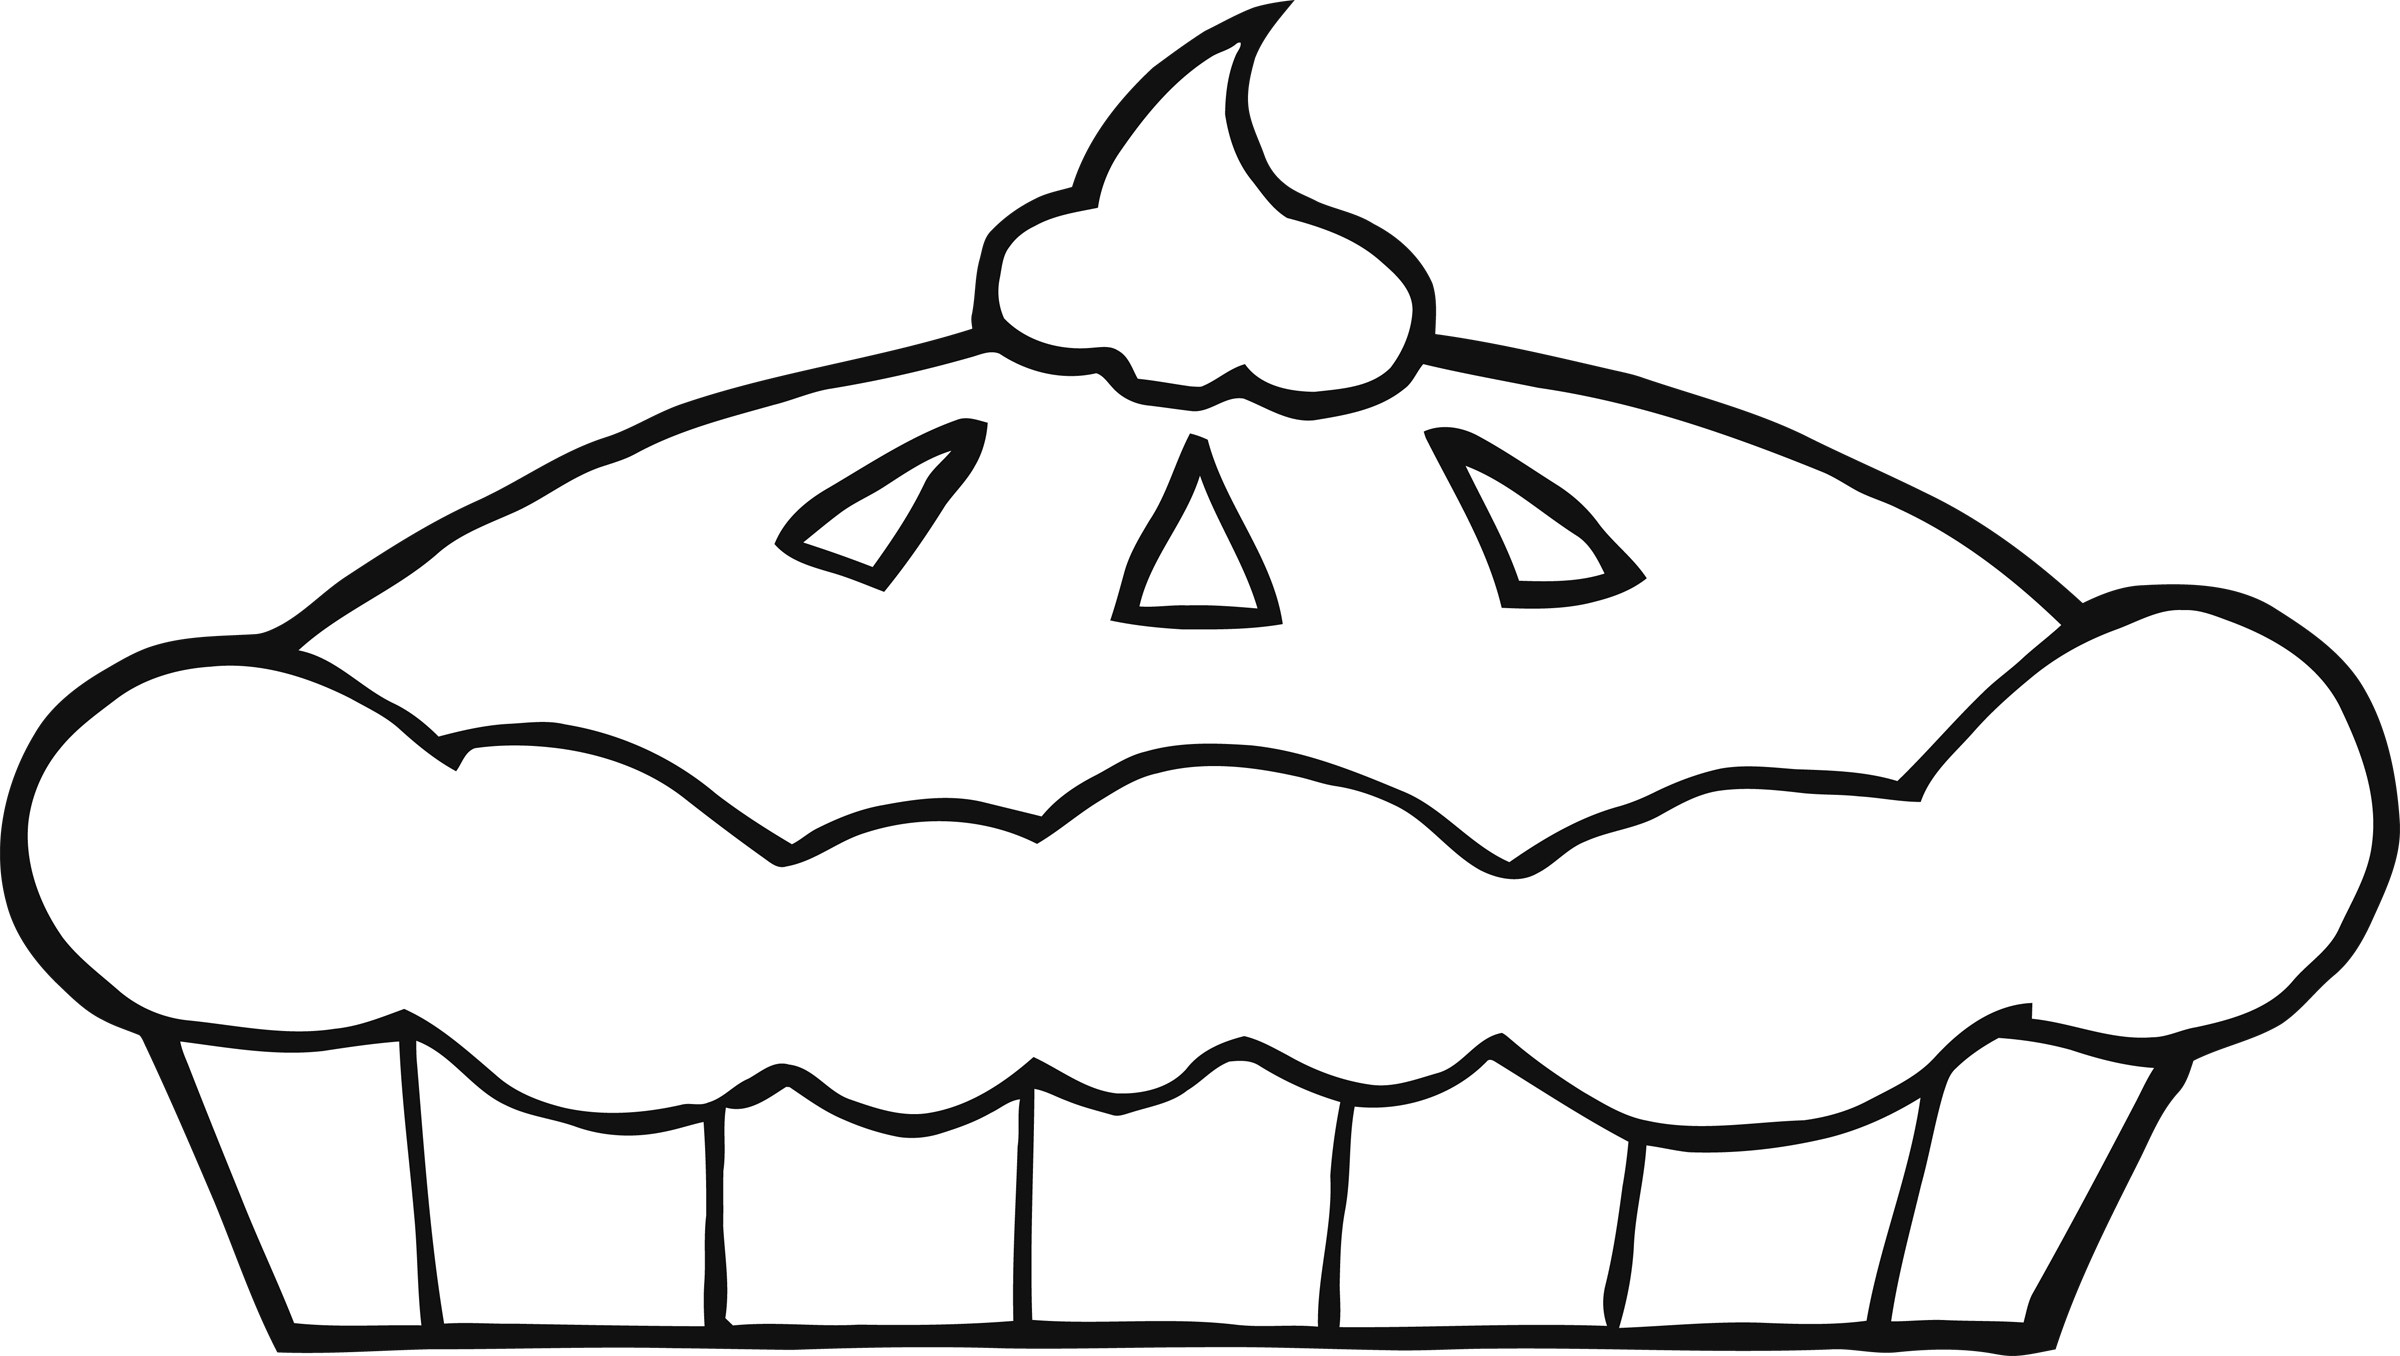 2400x1356 Thanksgiving Pie Clipart Black And White 101 Clip Art